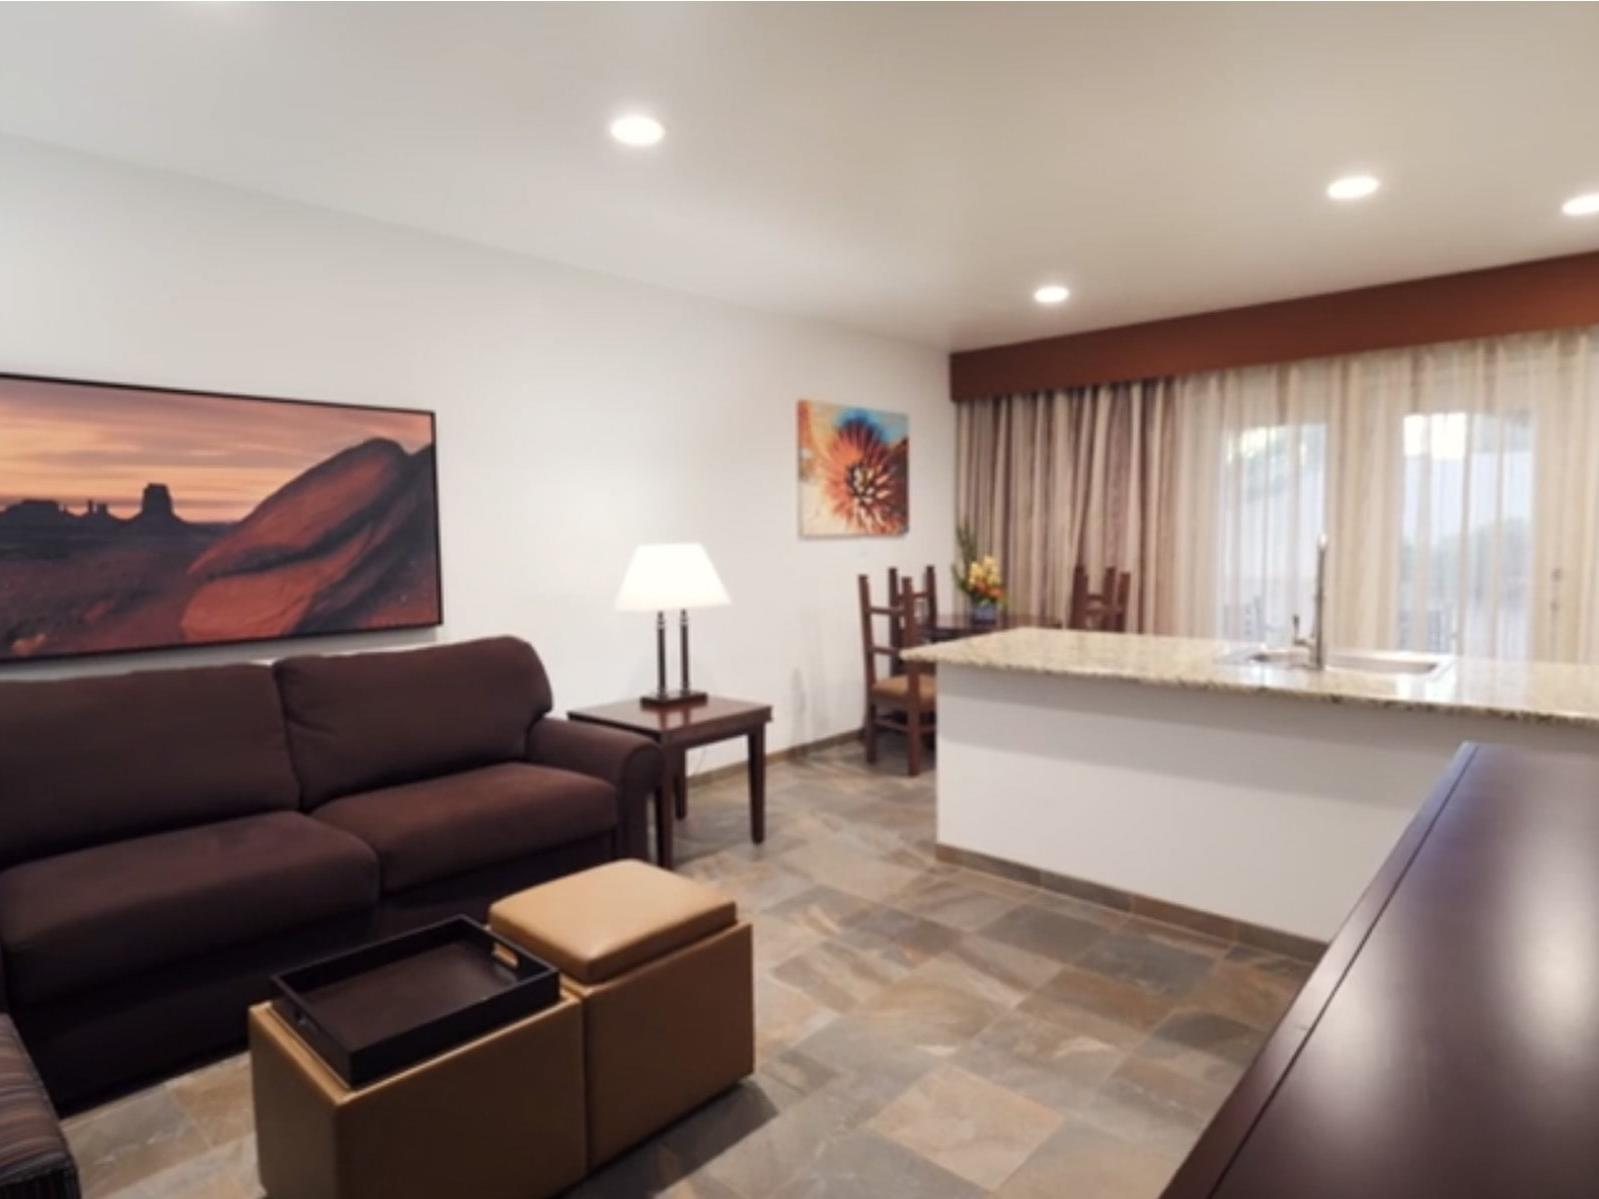 Spacious, renovated Sedona hotel living room with neutral colors